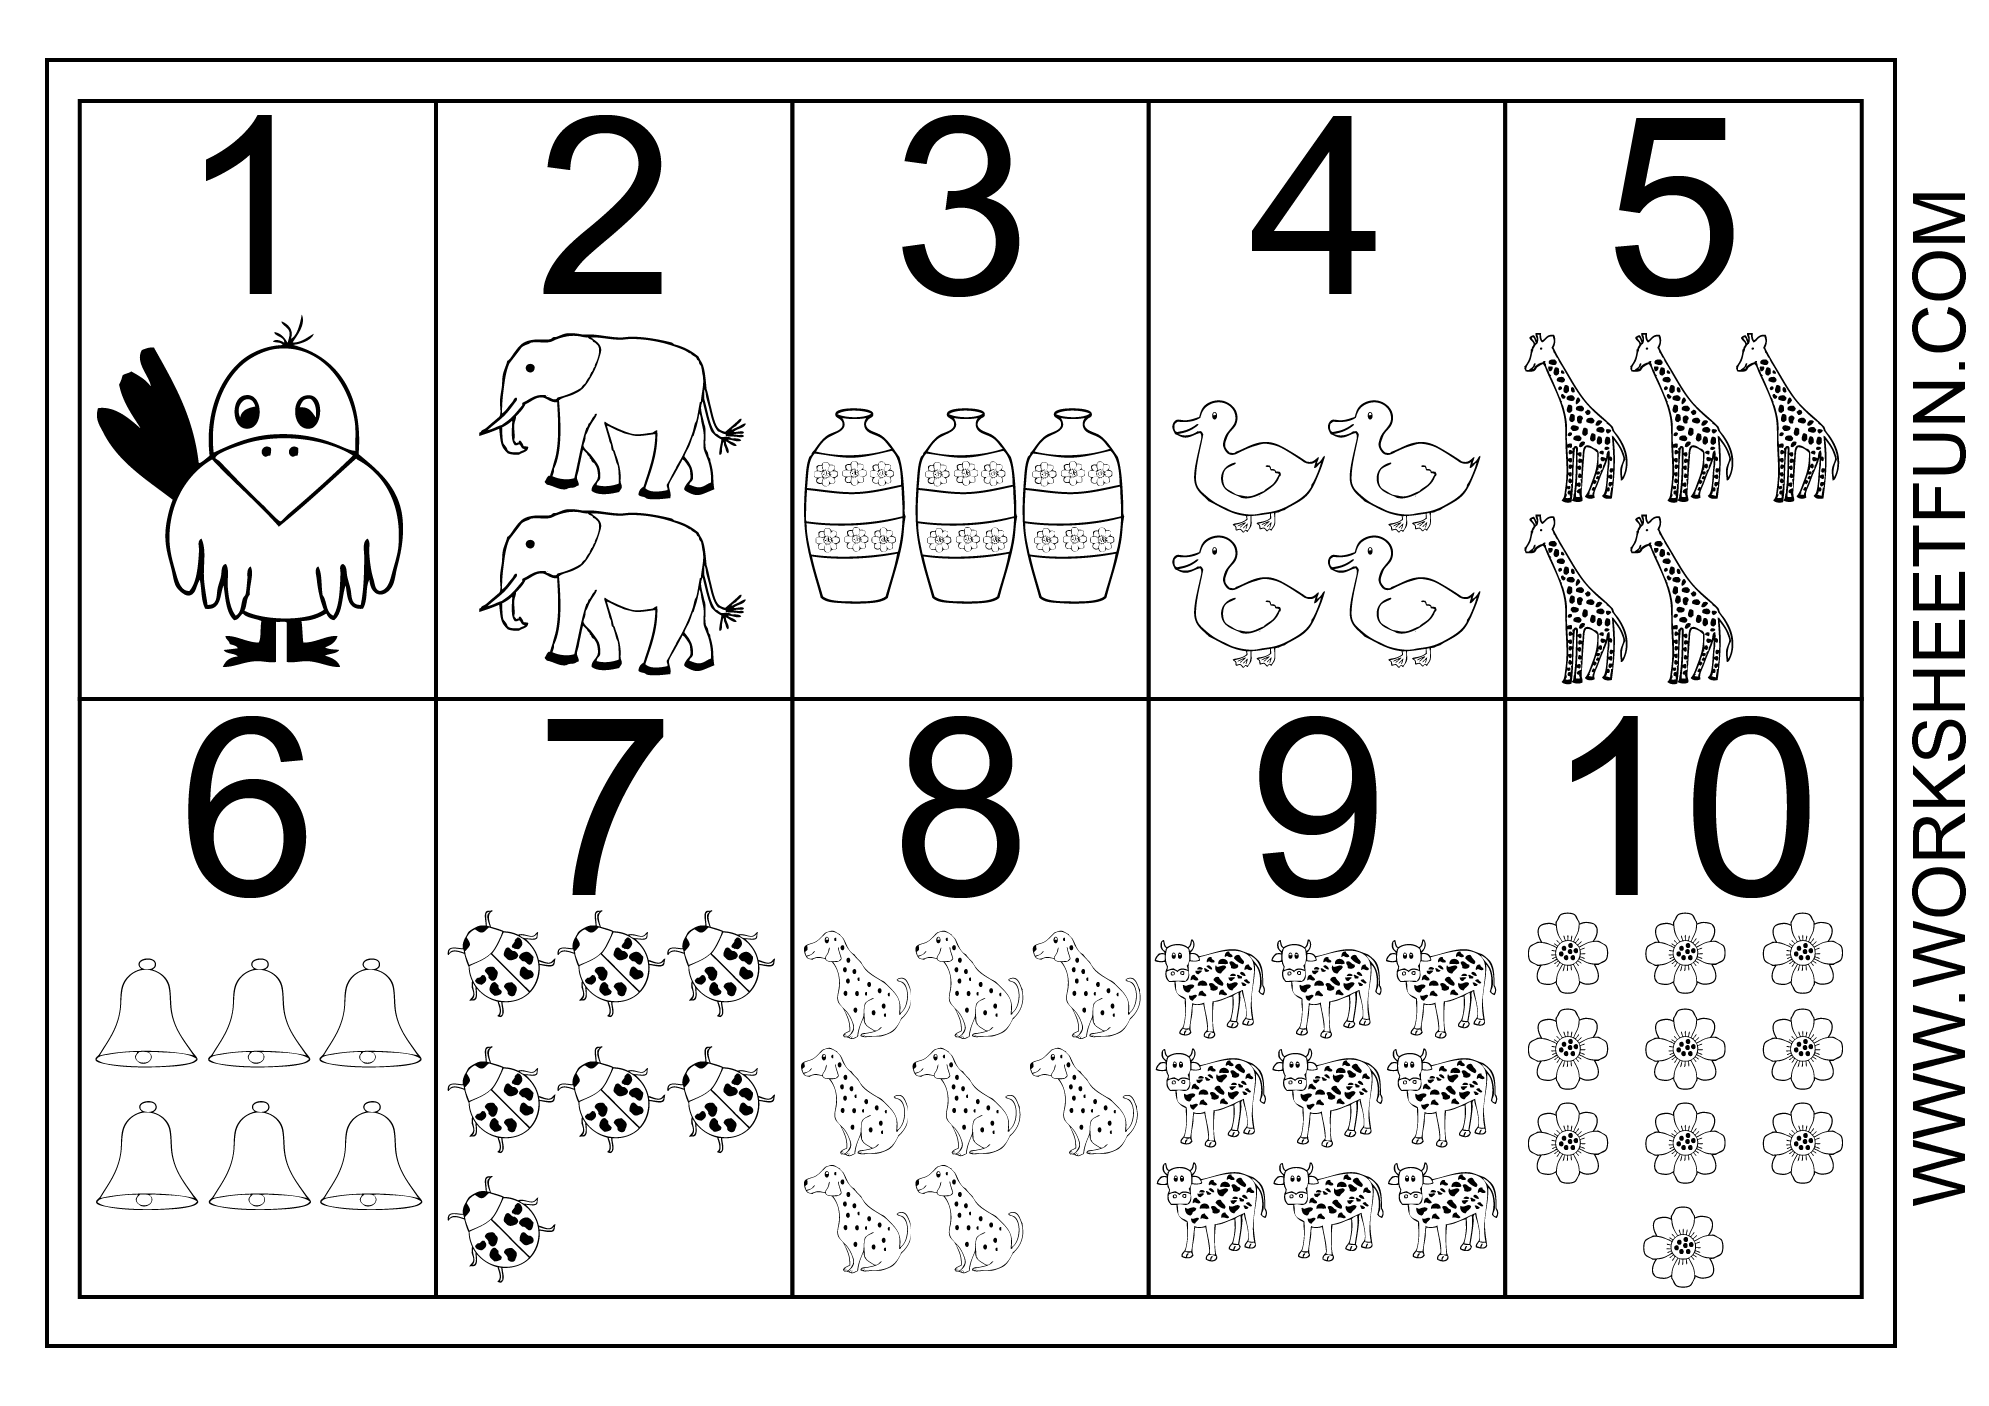 8 Images of Free Printable Number Chart 1-10